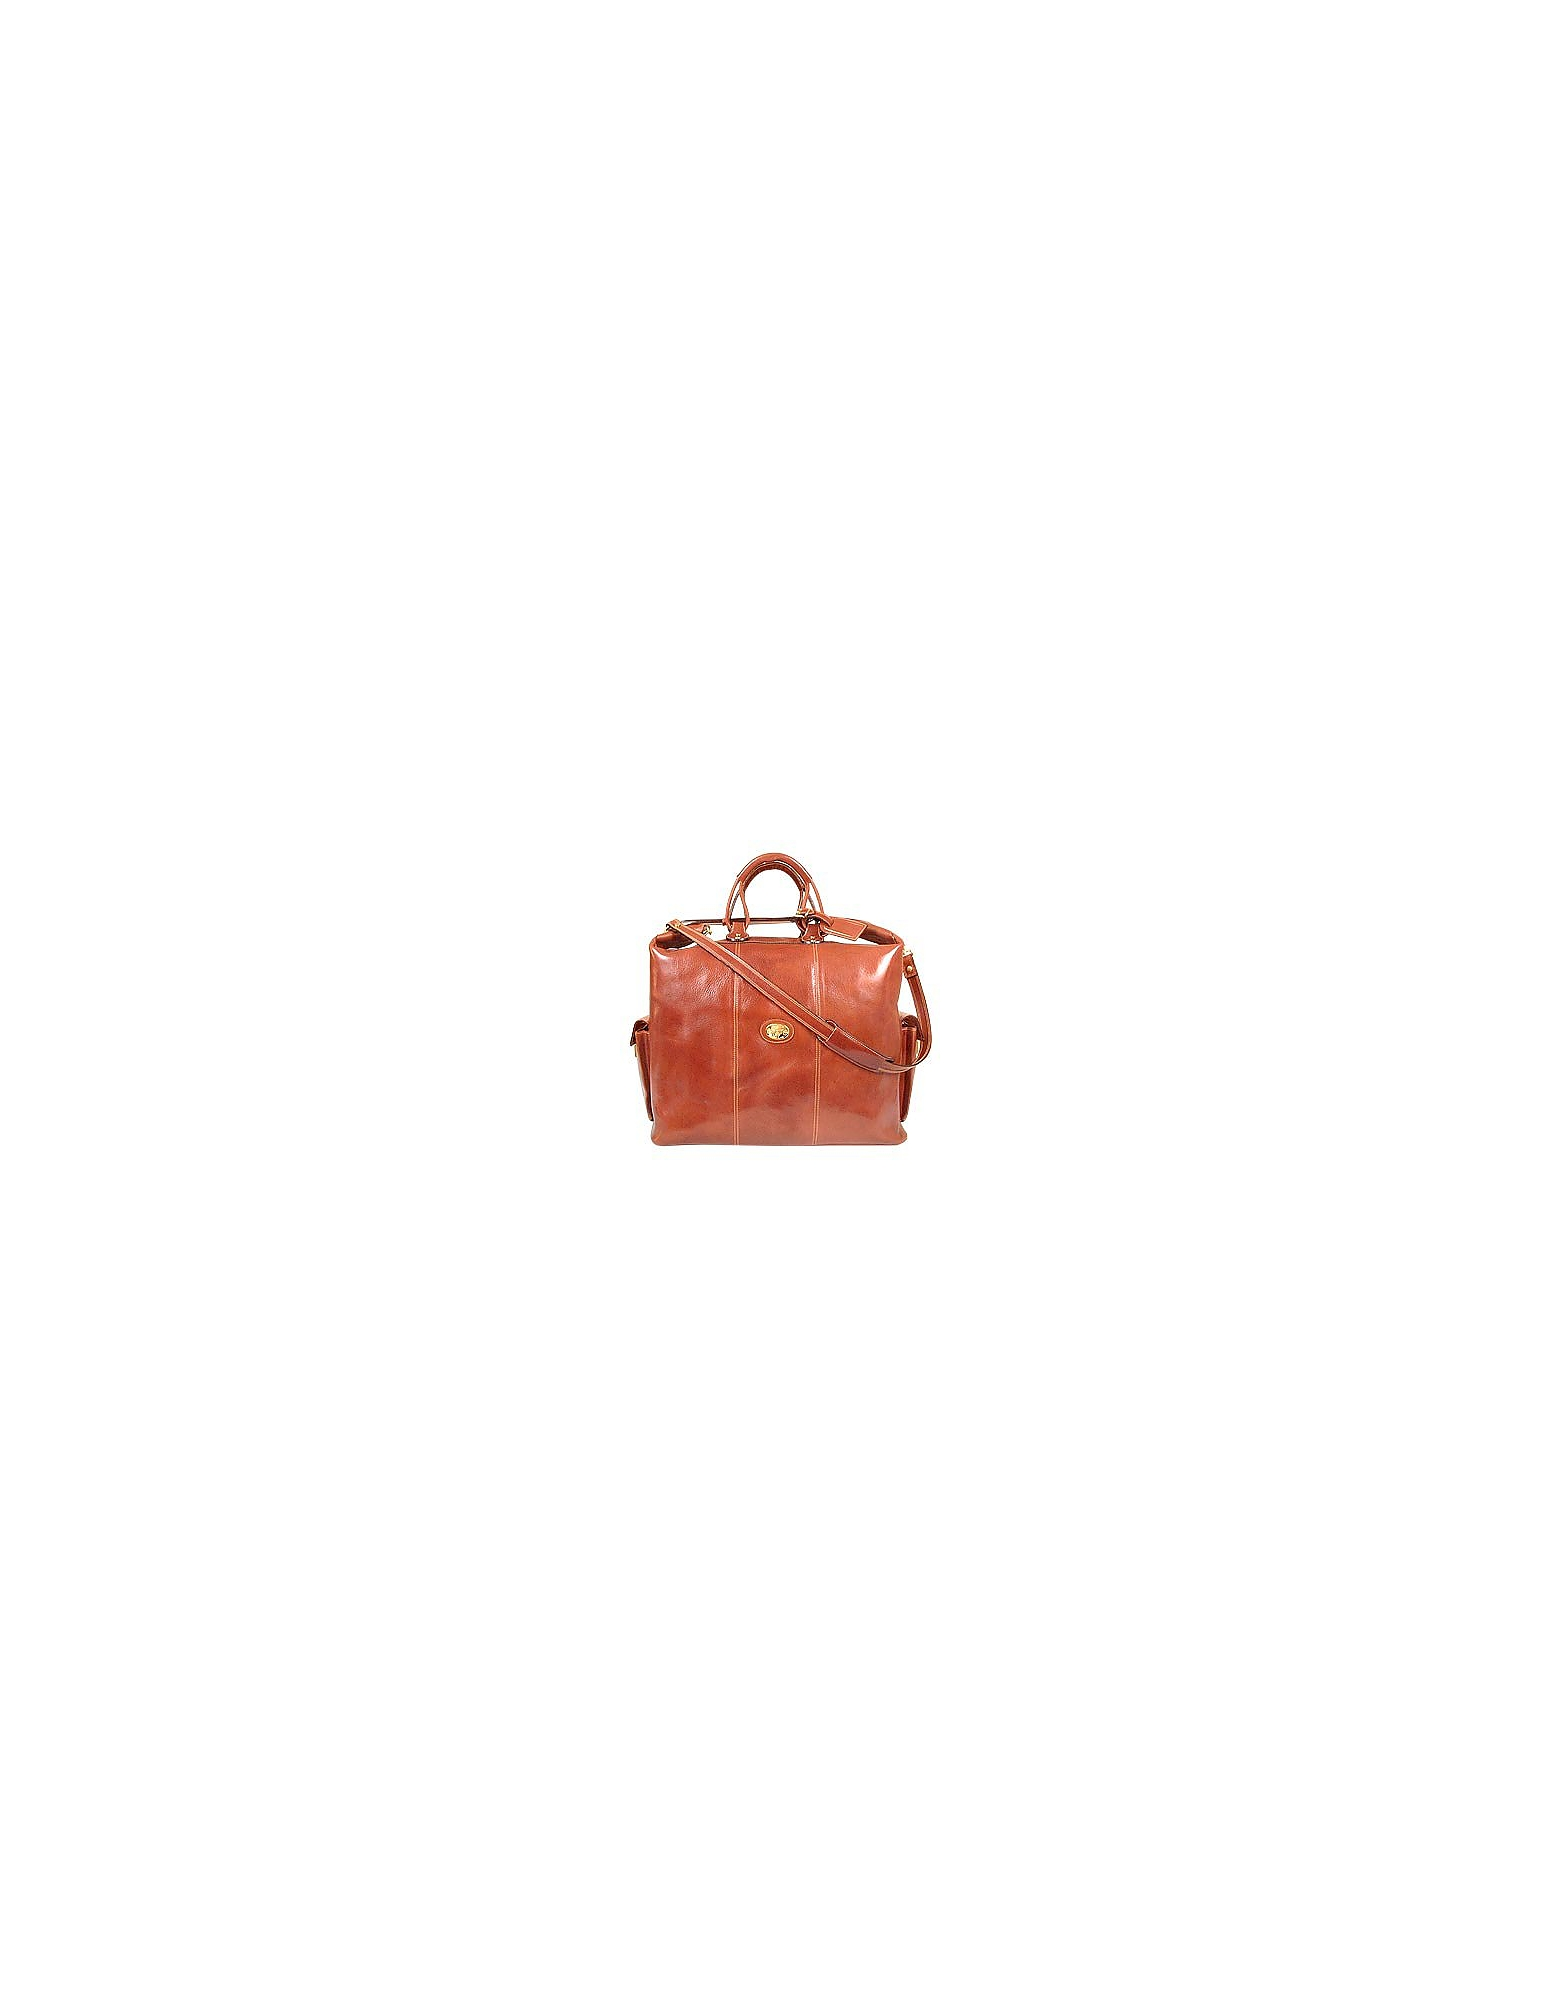 L.A.P.A. Travel Bags, Cristoforo Colombo Collection Travel Bag